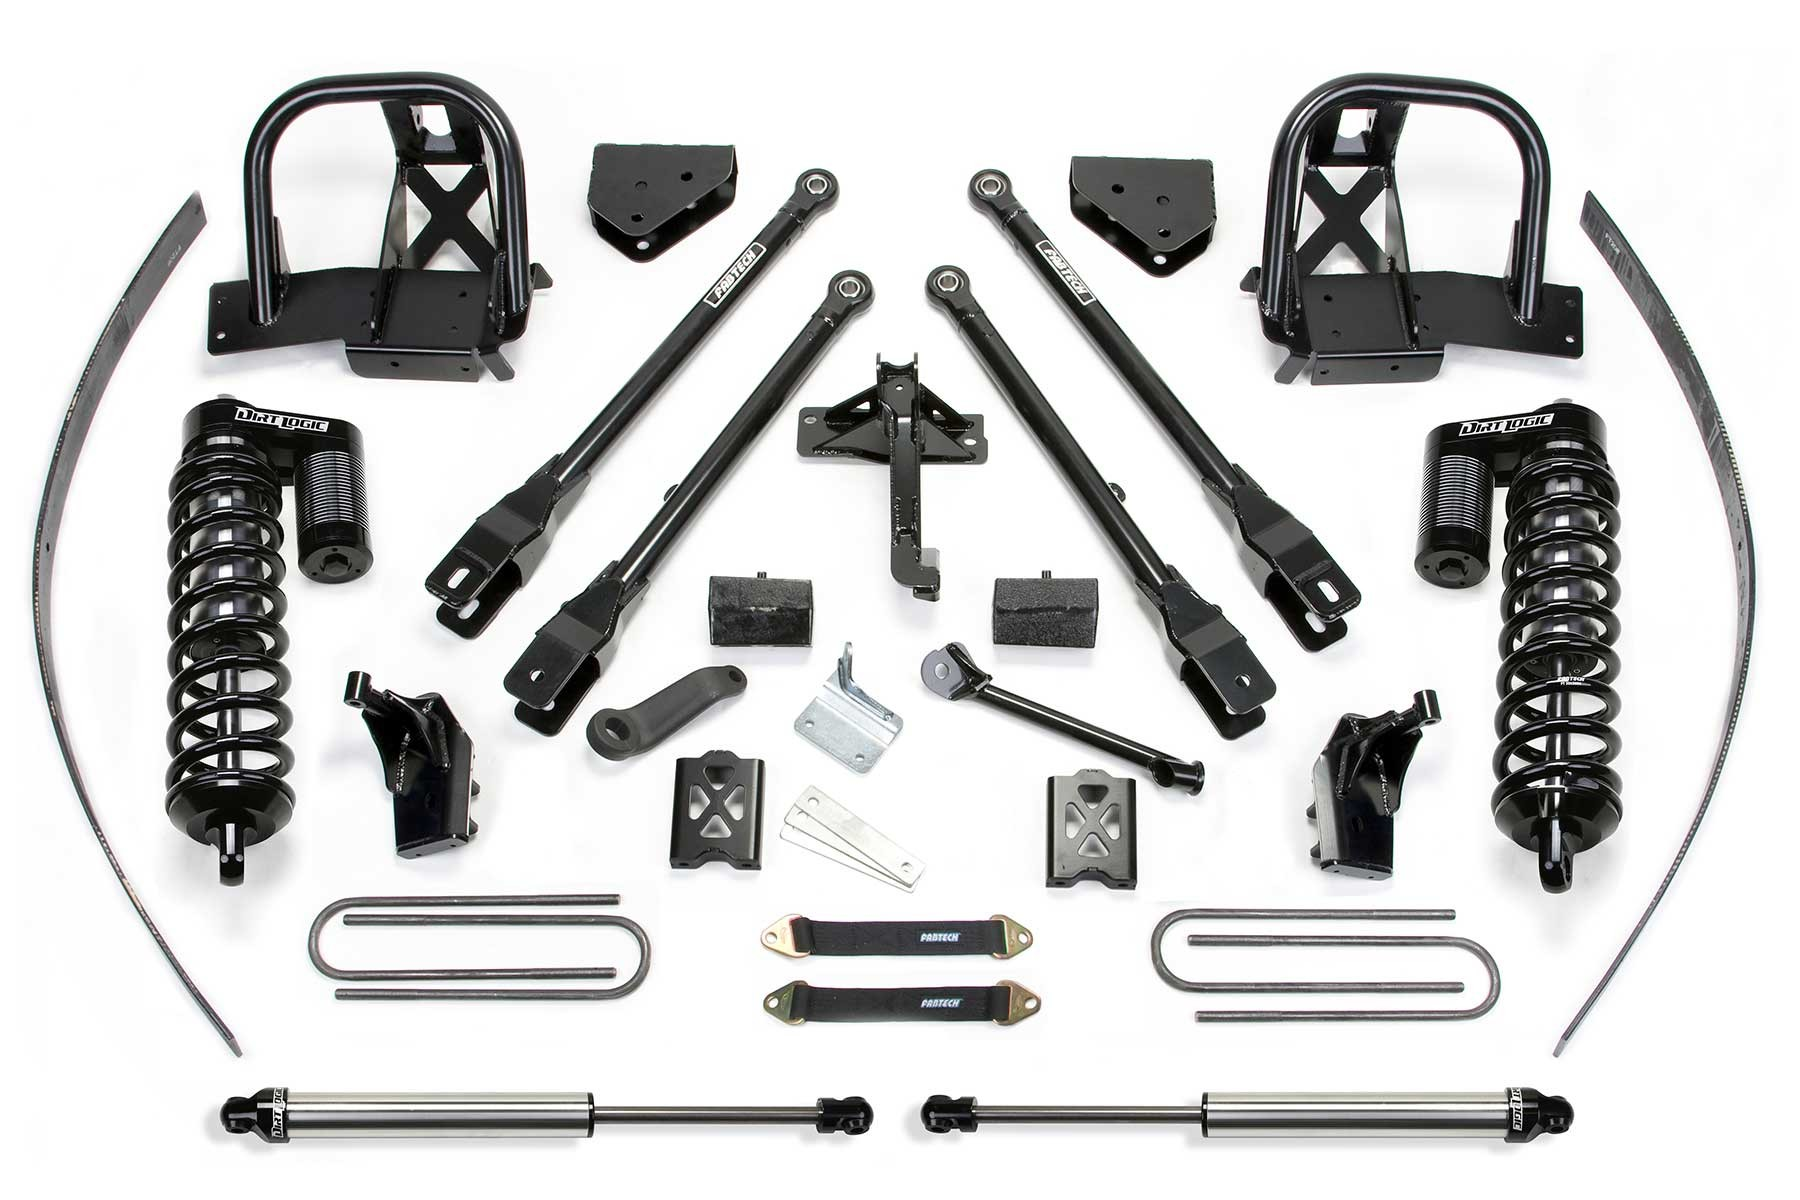 FABTECH 2011-16 FORD F250 4WD- 8″ 4 LINK SYSTEM W/DIRT LOGIC 4.0 COILOVERS & REAR DIRT LOGIC SHOCKS